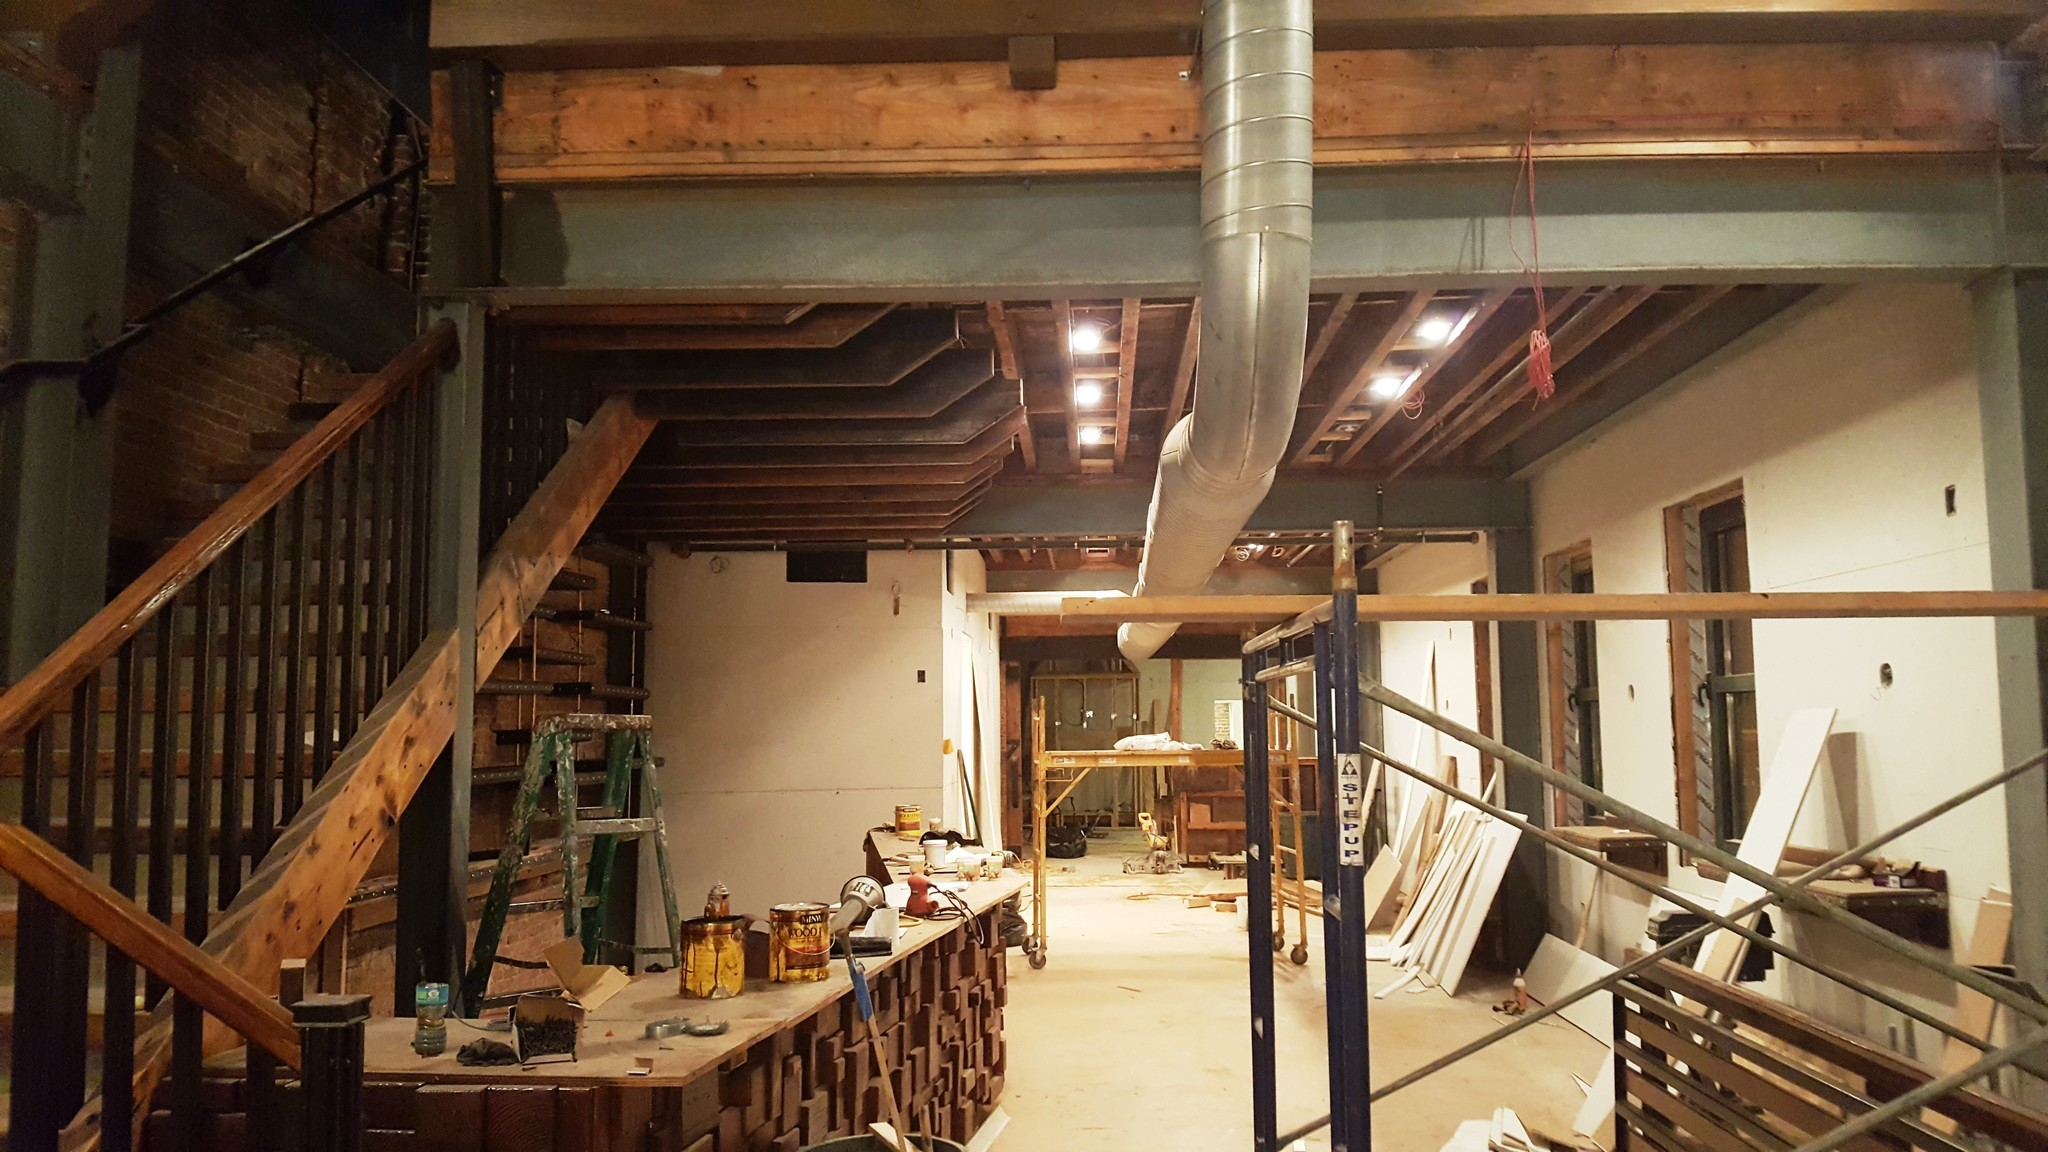 Ocean And River Grille Owner To Open Upscale Steakhouse In Downtown Easton The Morning Call